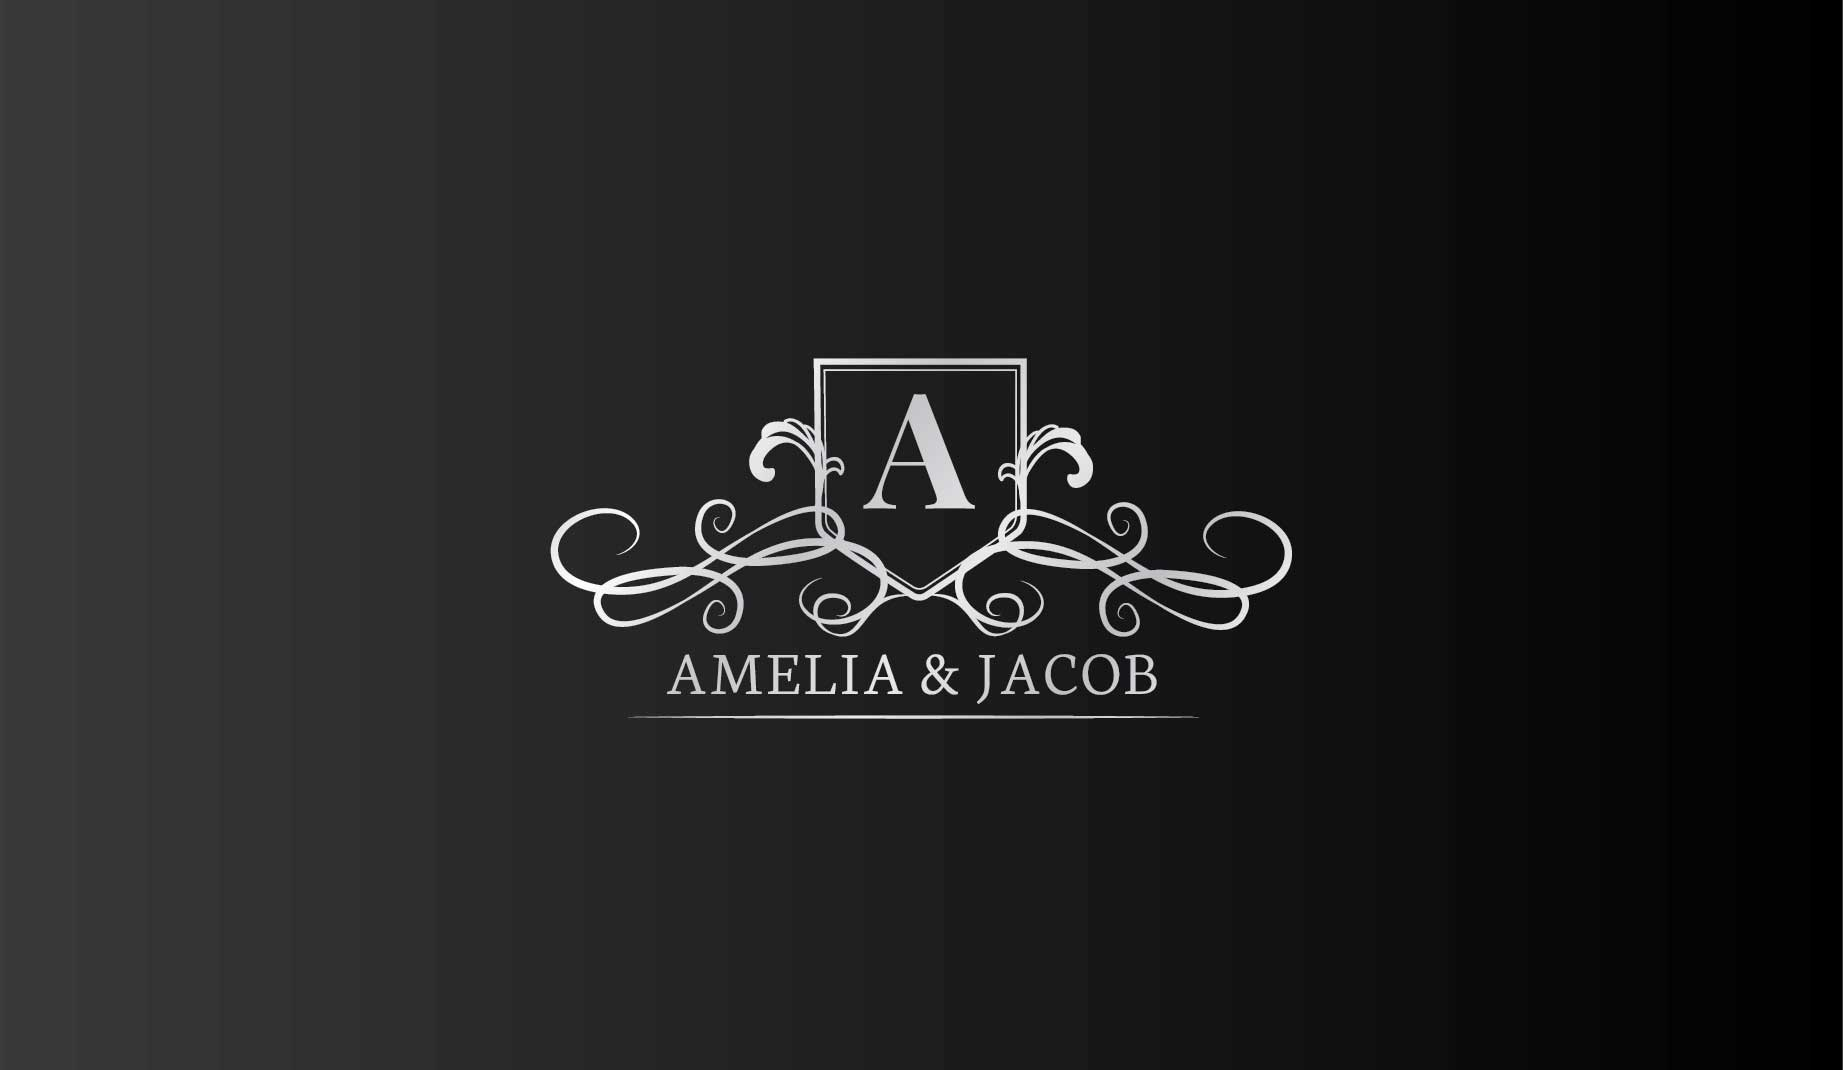 logo design service for Amelia  & Jacob